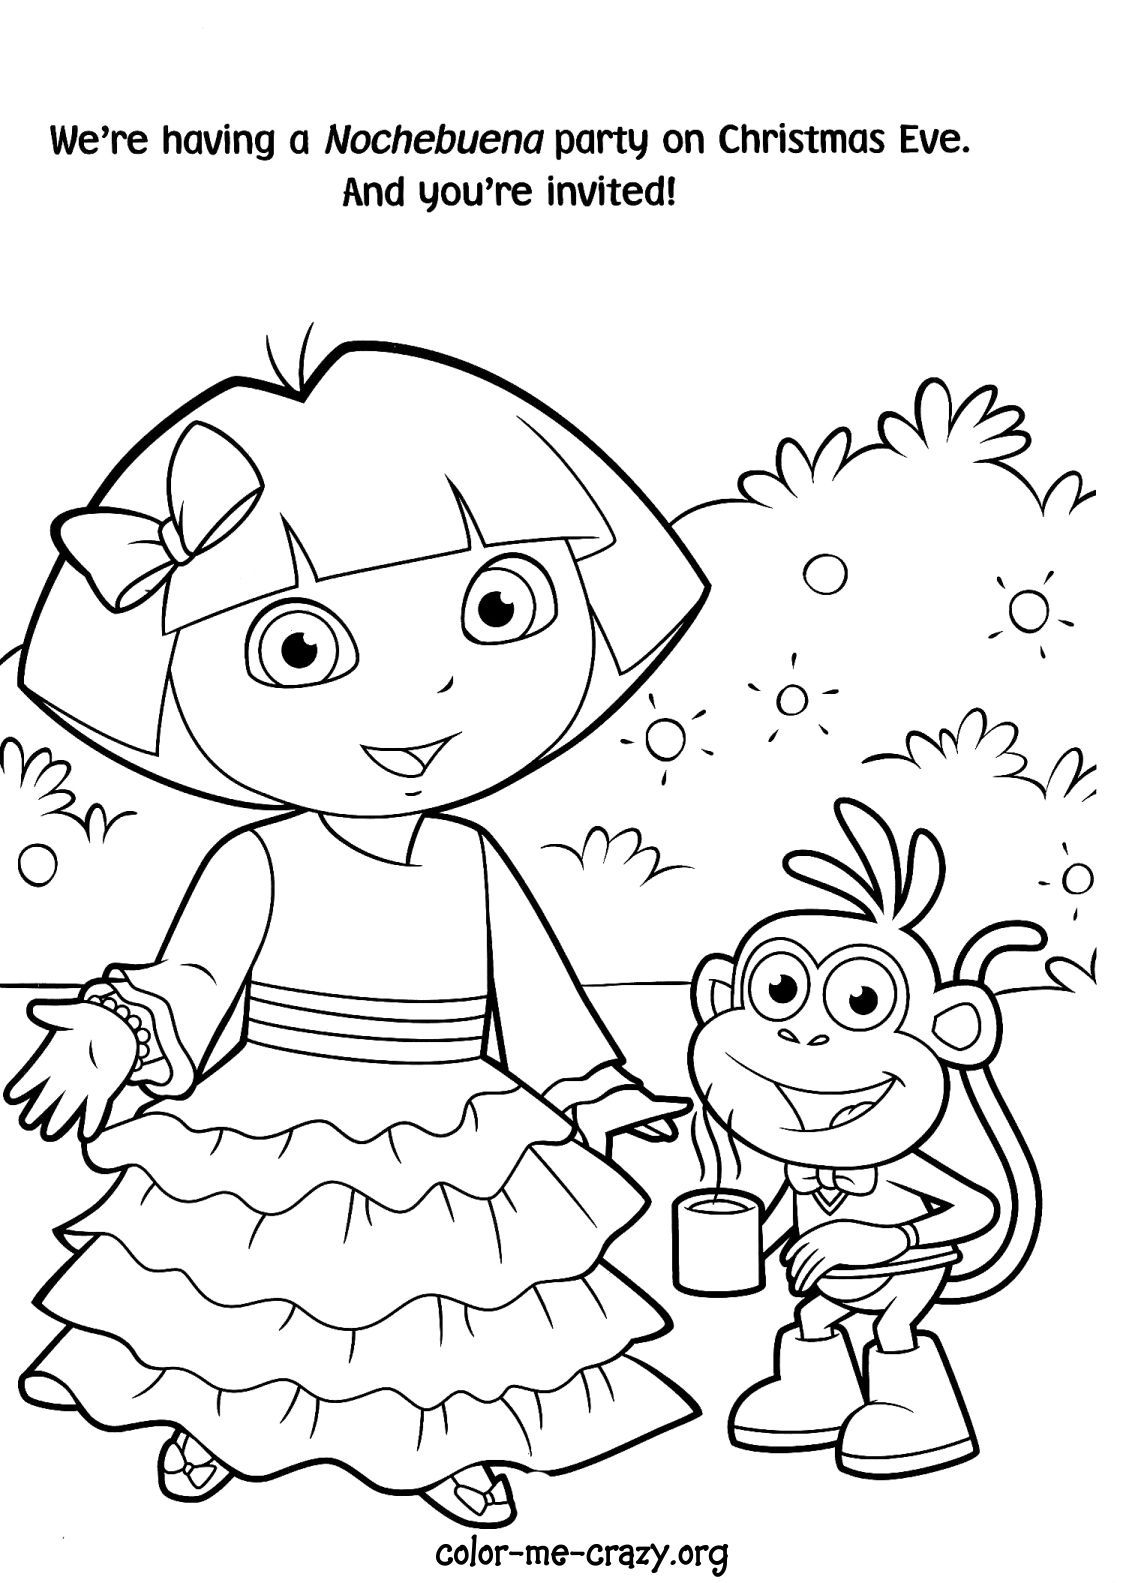 dora coloring pages online free 19 best images about dora the explorer coloring pages on coloring dora online pages free